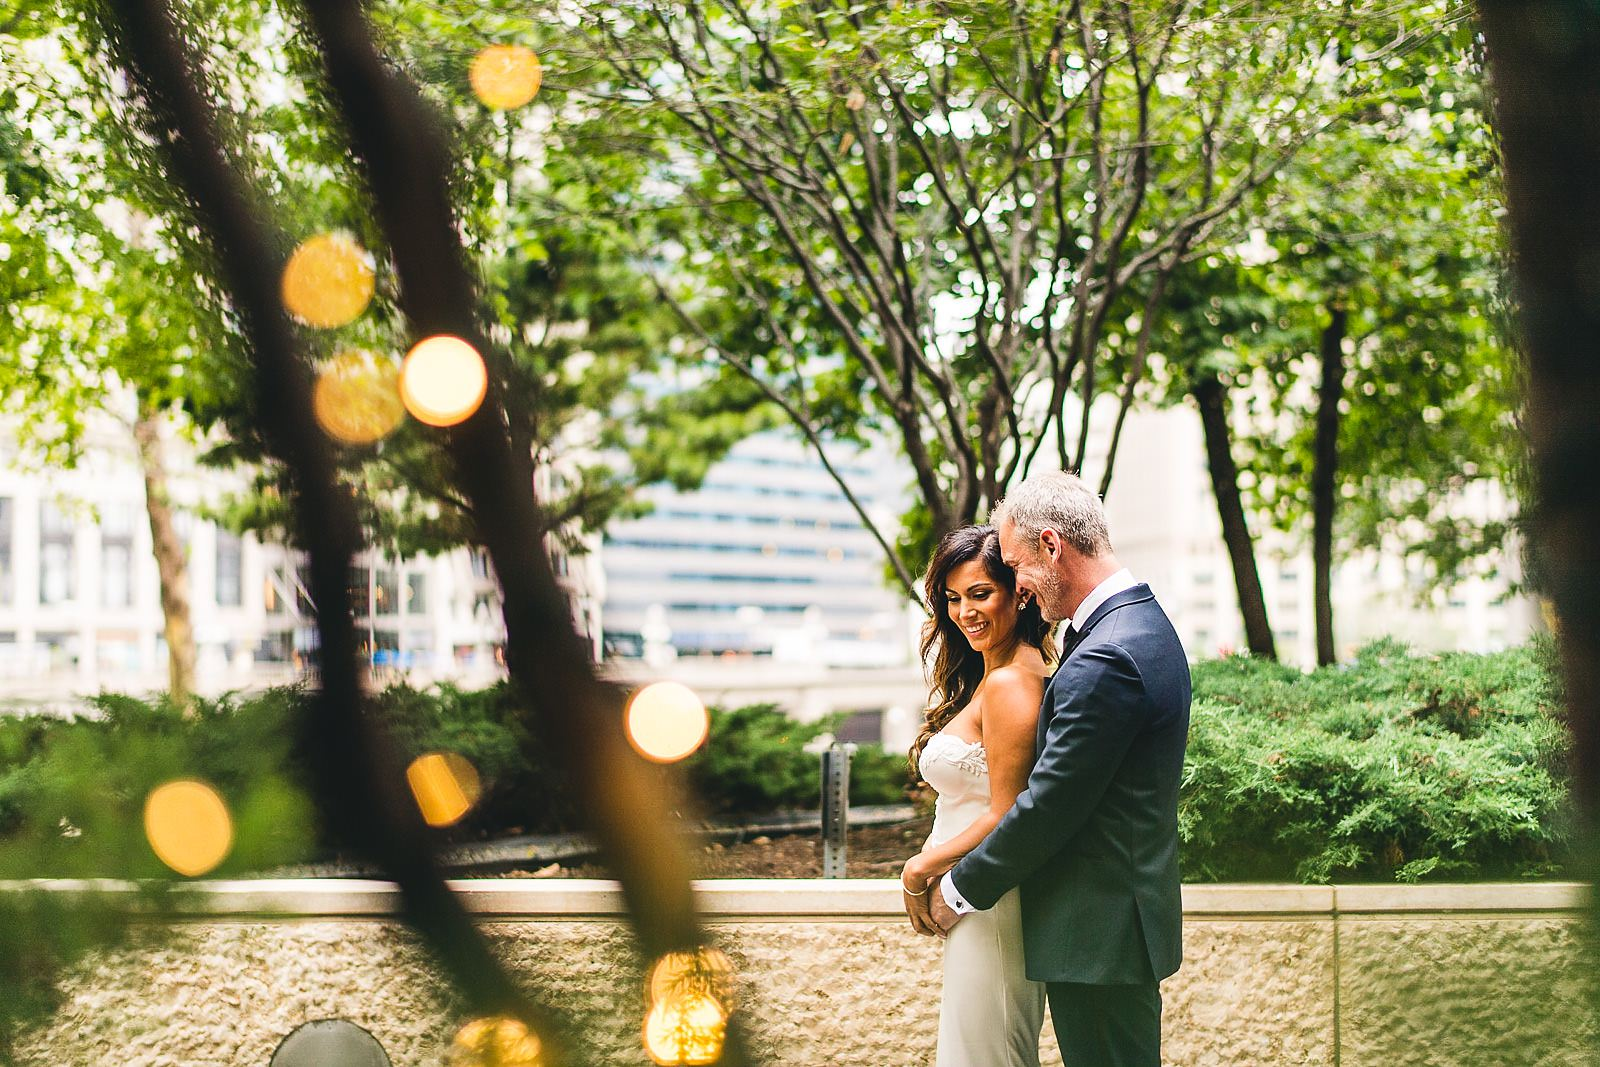 16 creative wedding photos downtown chicago - Intercontinental Chicago Hotel Wedding // Lili + Danny